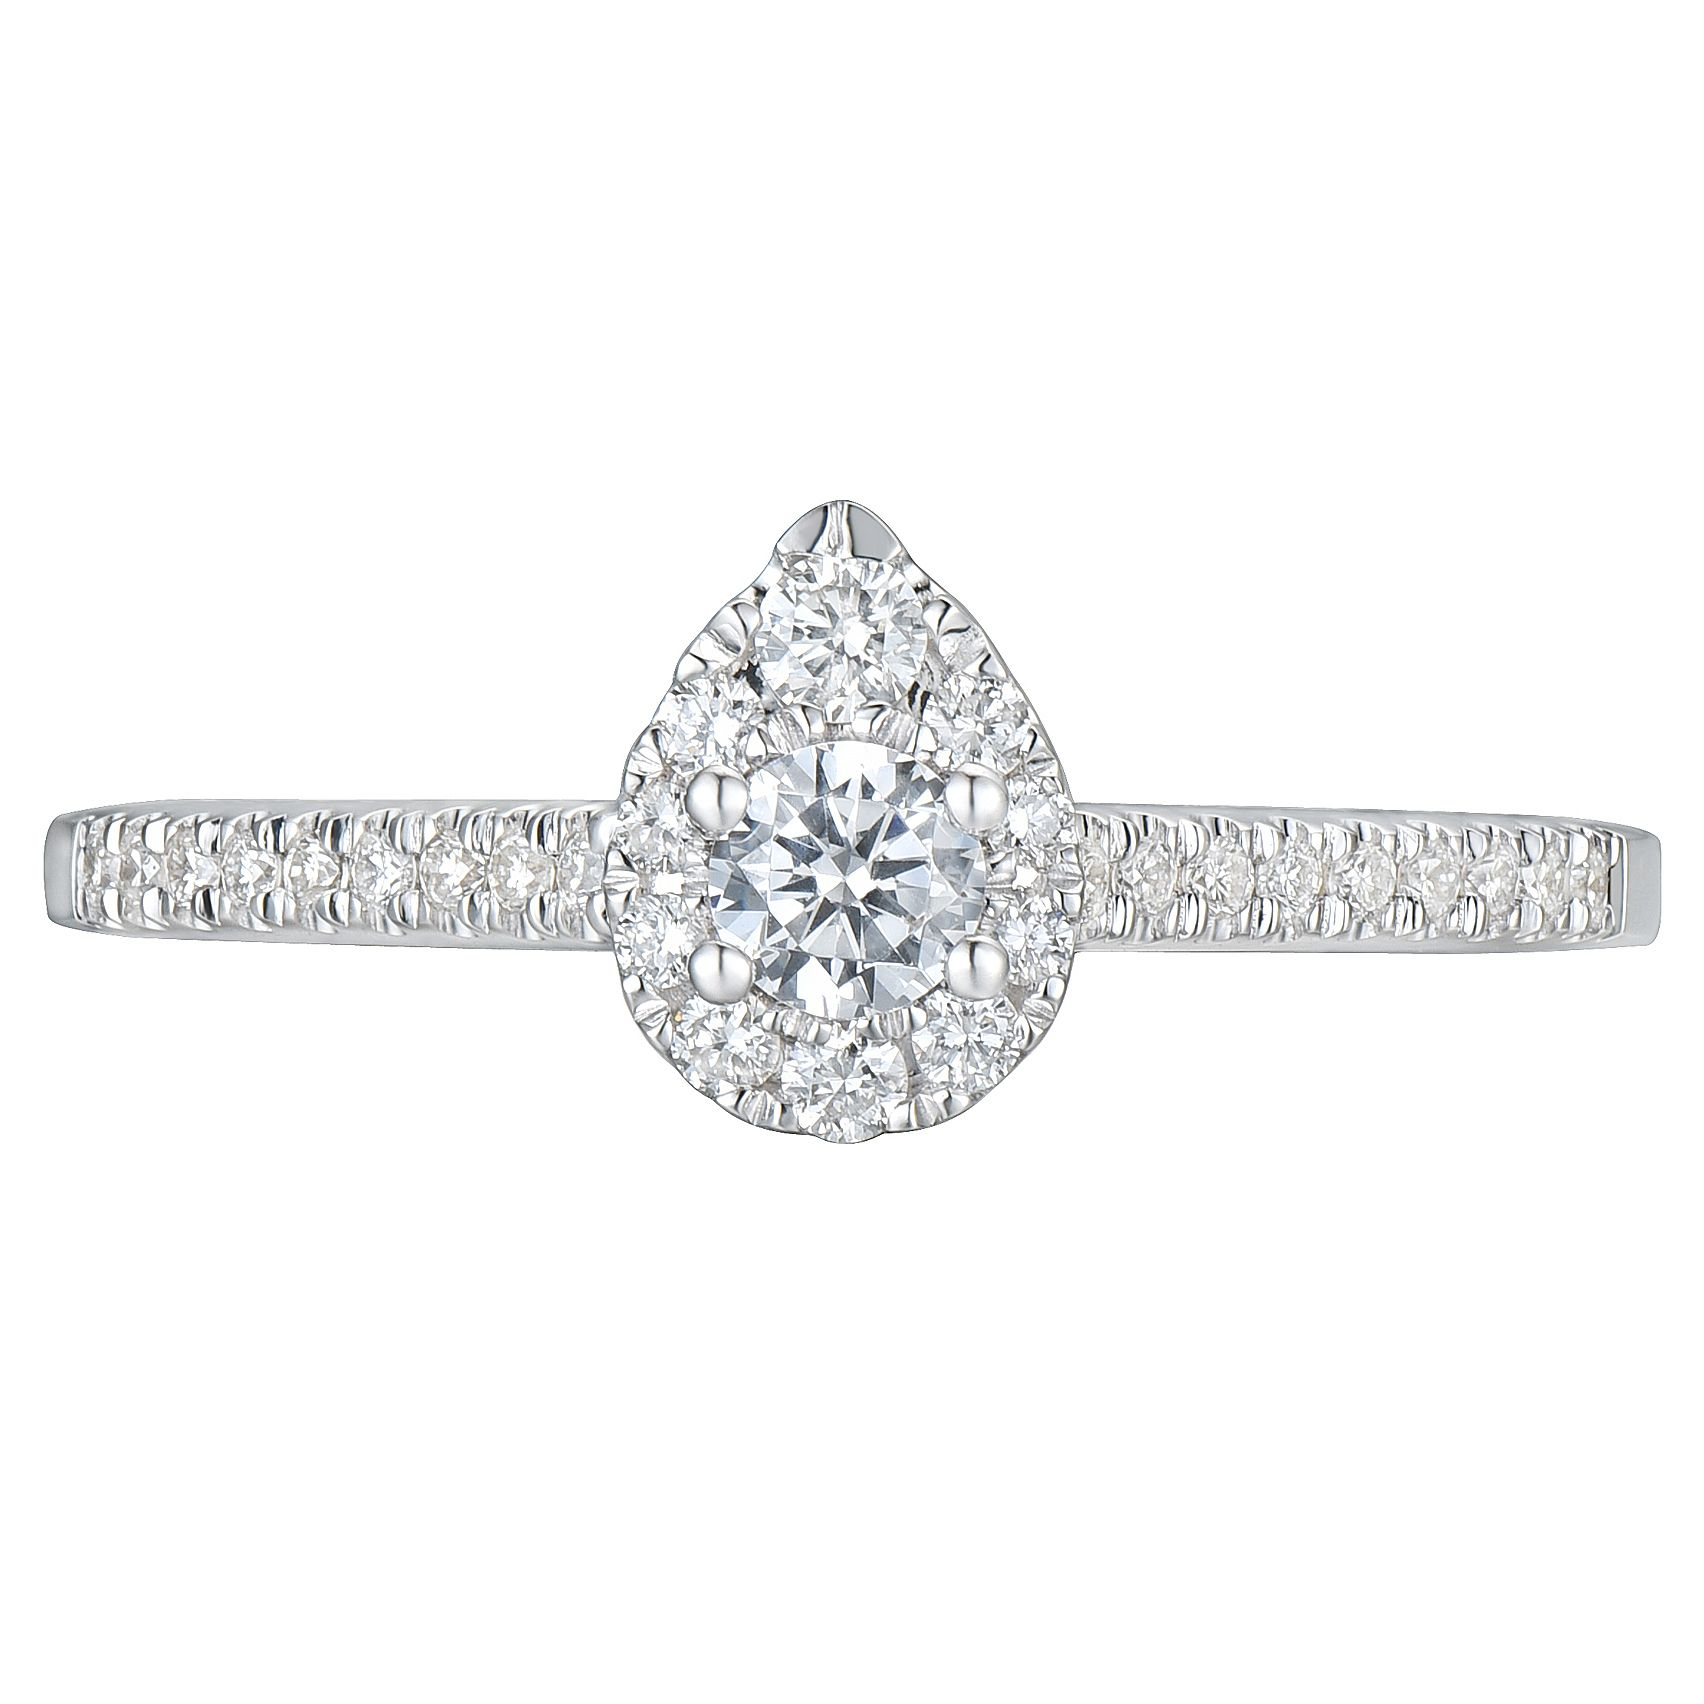 2dd91d254f8b3 Tolkowsky 18ct White Gold 0.38ct Pear Halo Diamond Ring | Ernest ...